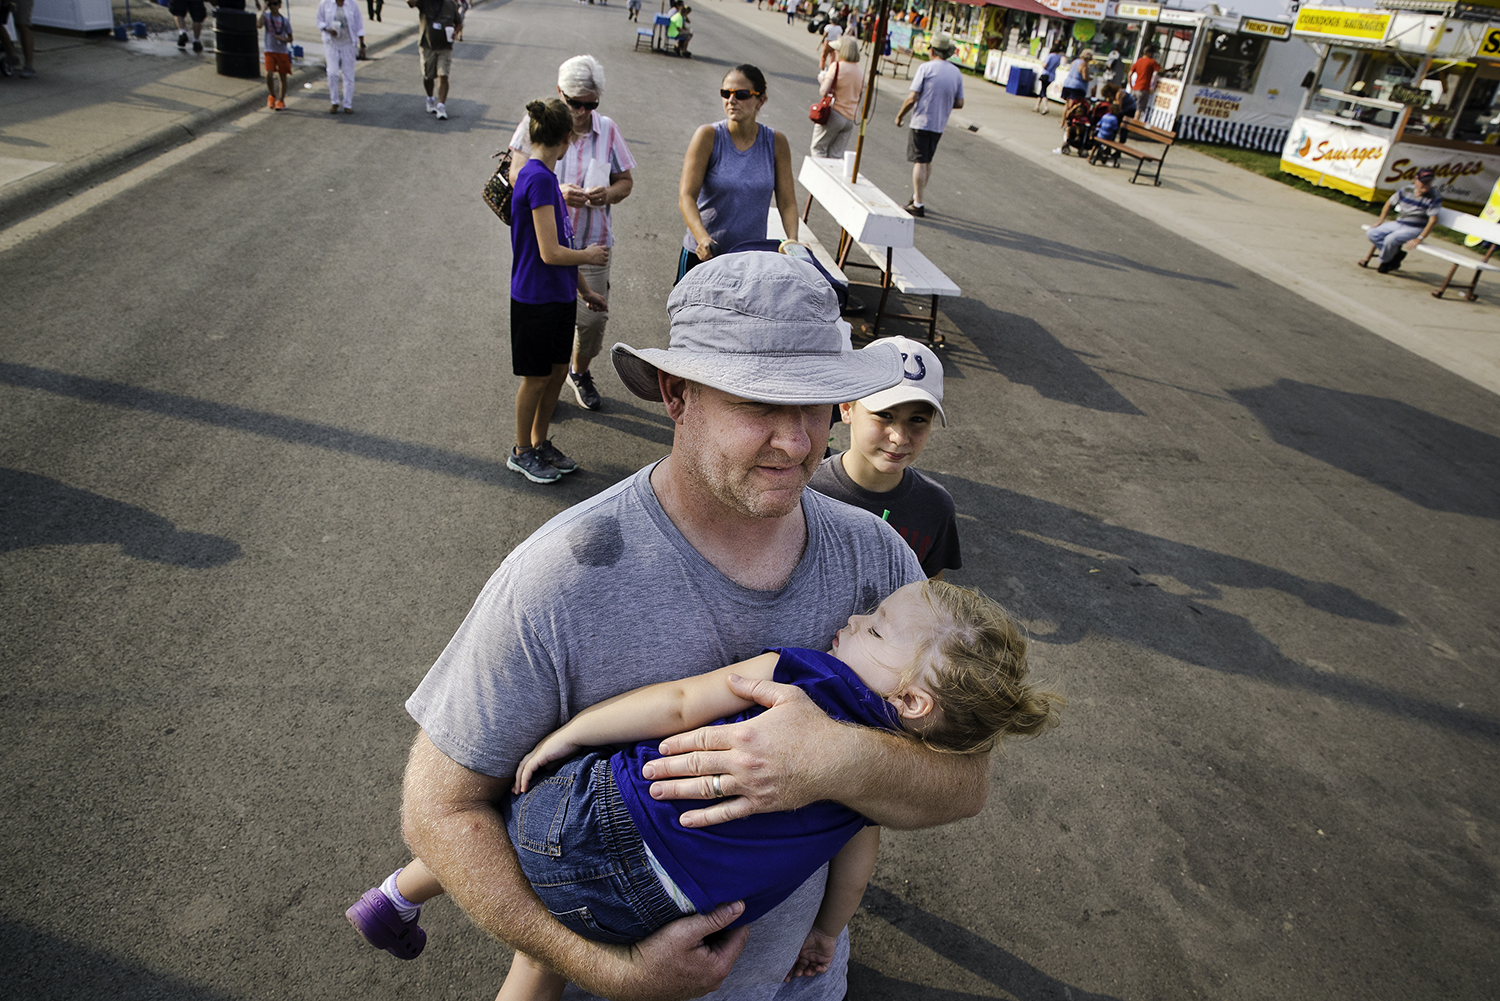 Josh Swift carries his daughter Iris as she naps while the family strolls down Grandstand Avenue at the Illinois State Fair Monday, Aug. 13, 2018. [Ted Schurter/The State Journal-Register]